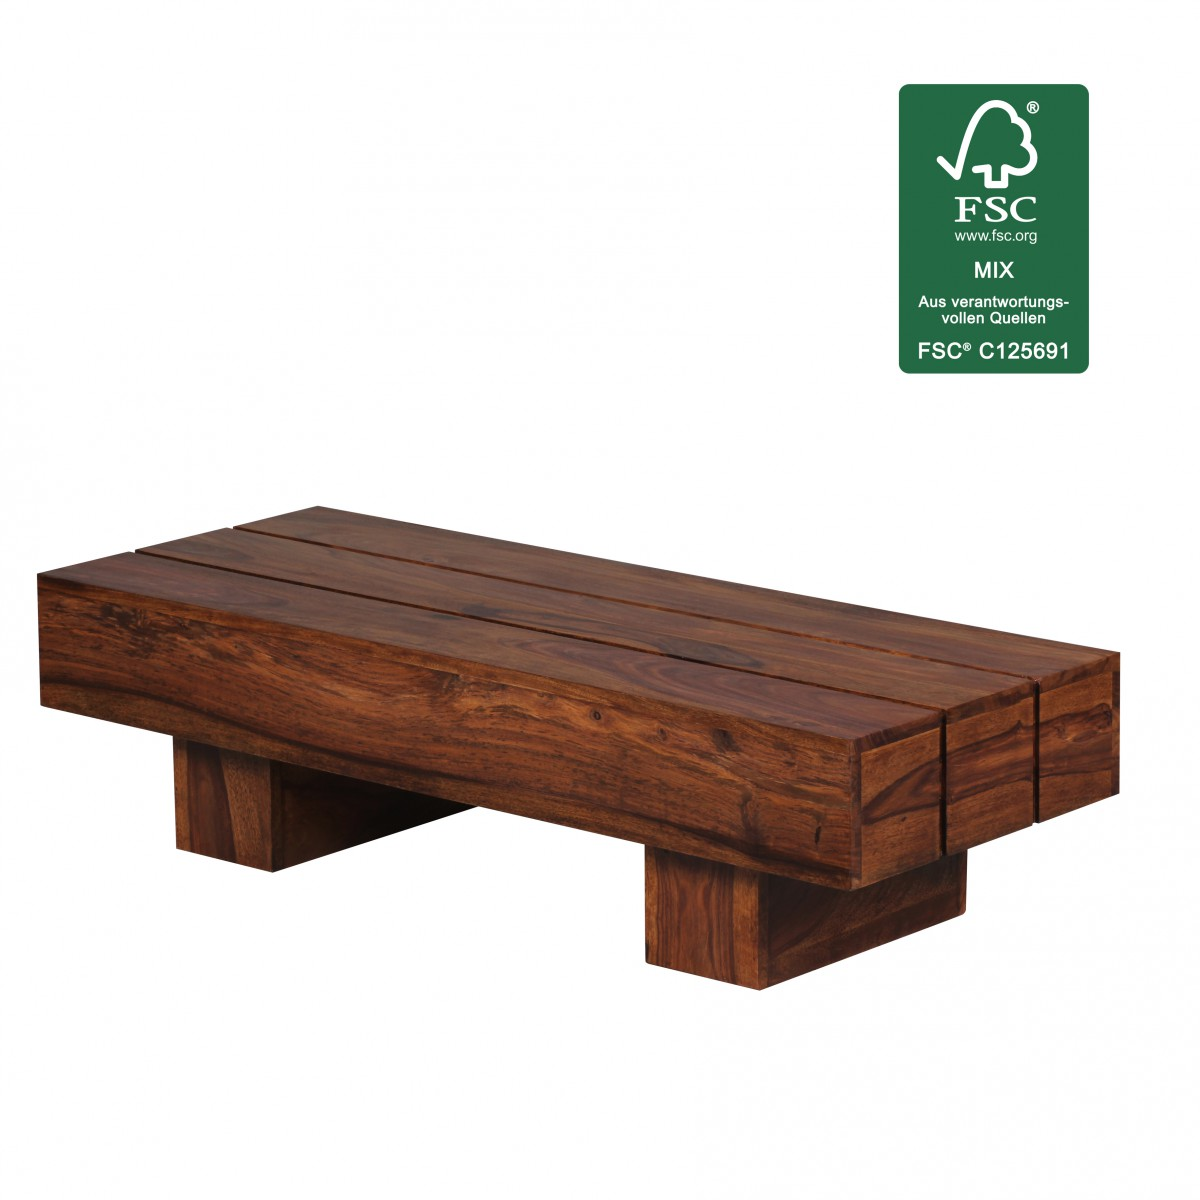 Wohnling sheesham table basse massif en bois massif salon coffee table neuf ebay - Table bois massif ...